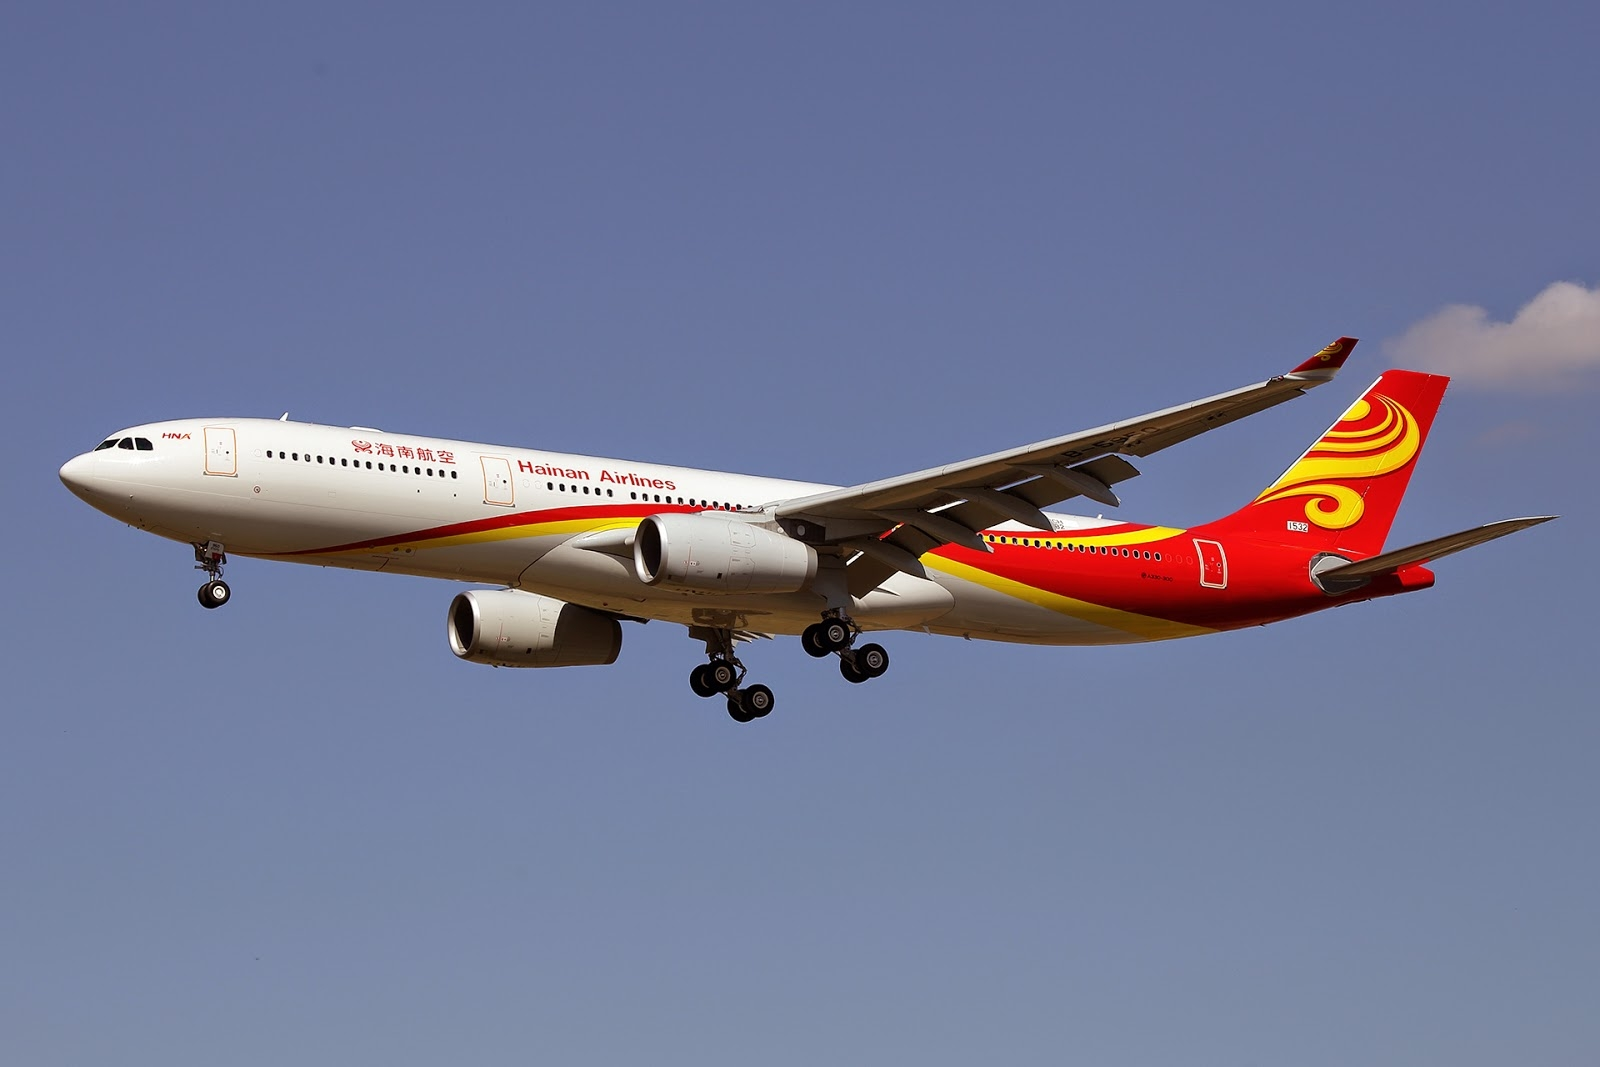 Hainan Airlines Takes Delivery of Its 10th A330-300 Aircraft. Hainan